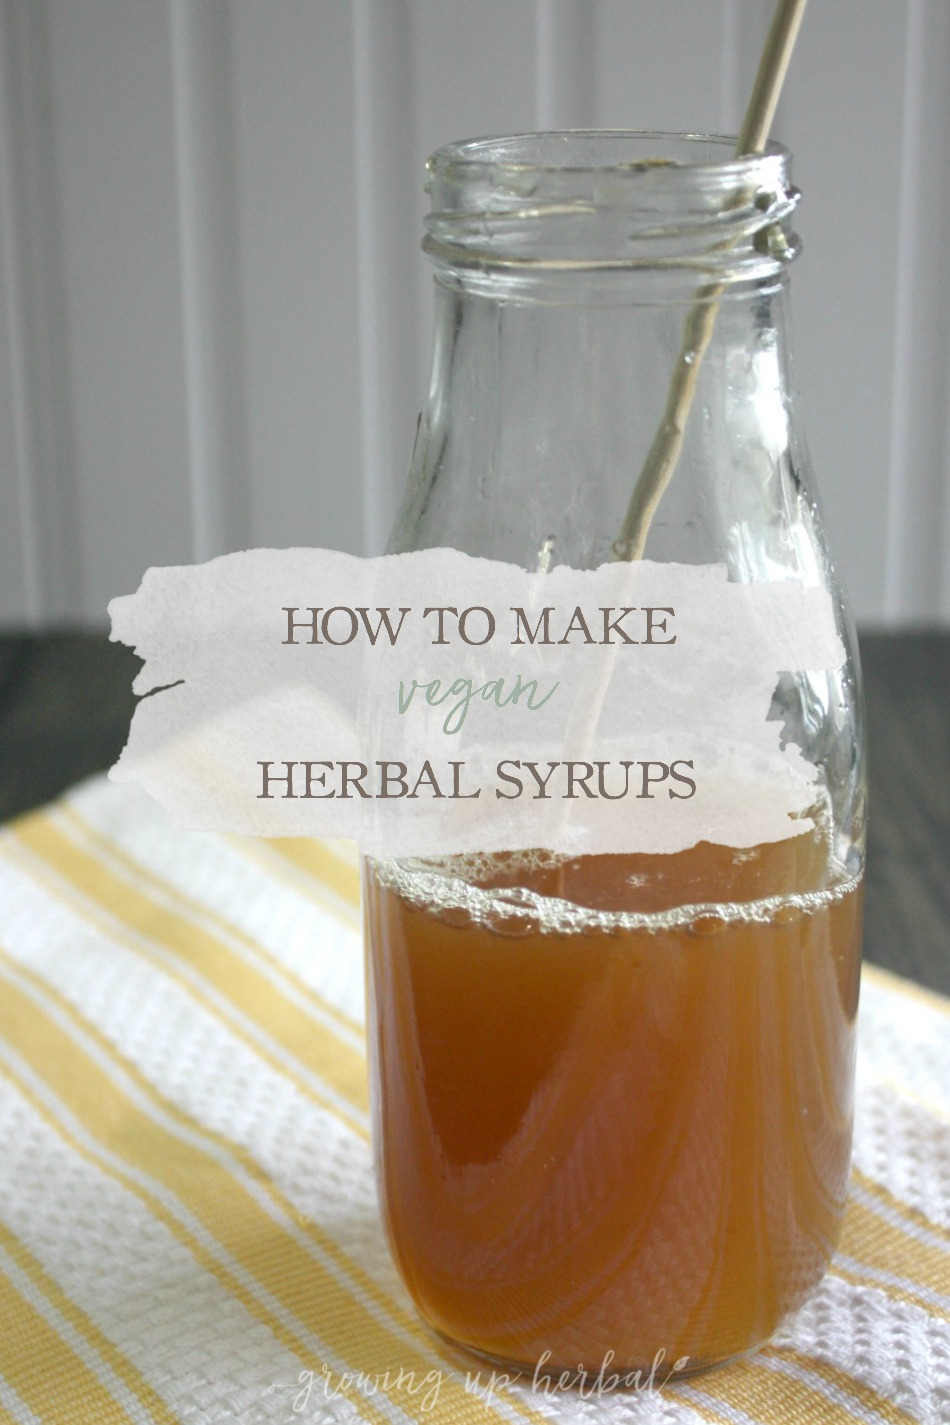 How To Make Vegan Herbal Syrups